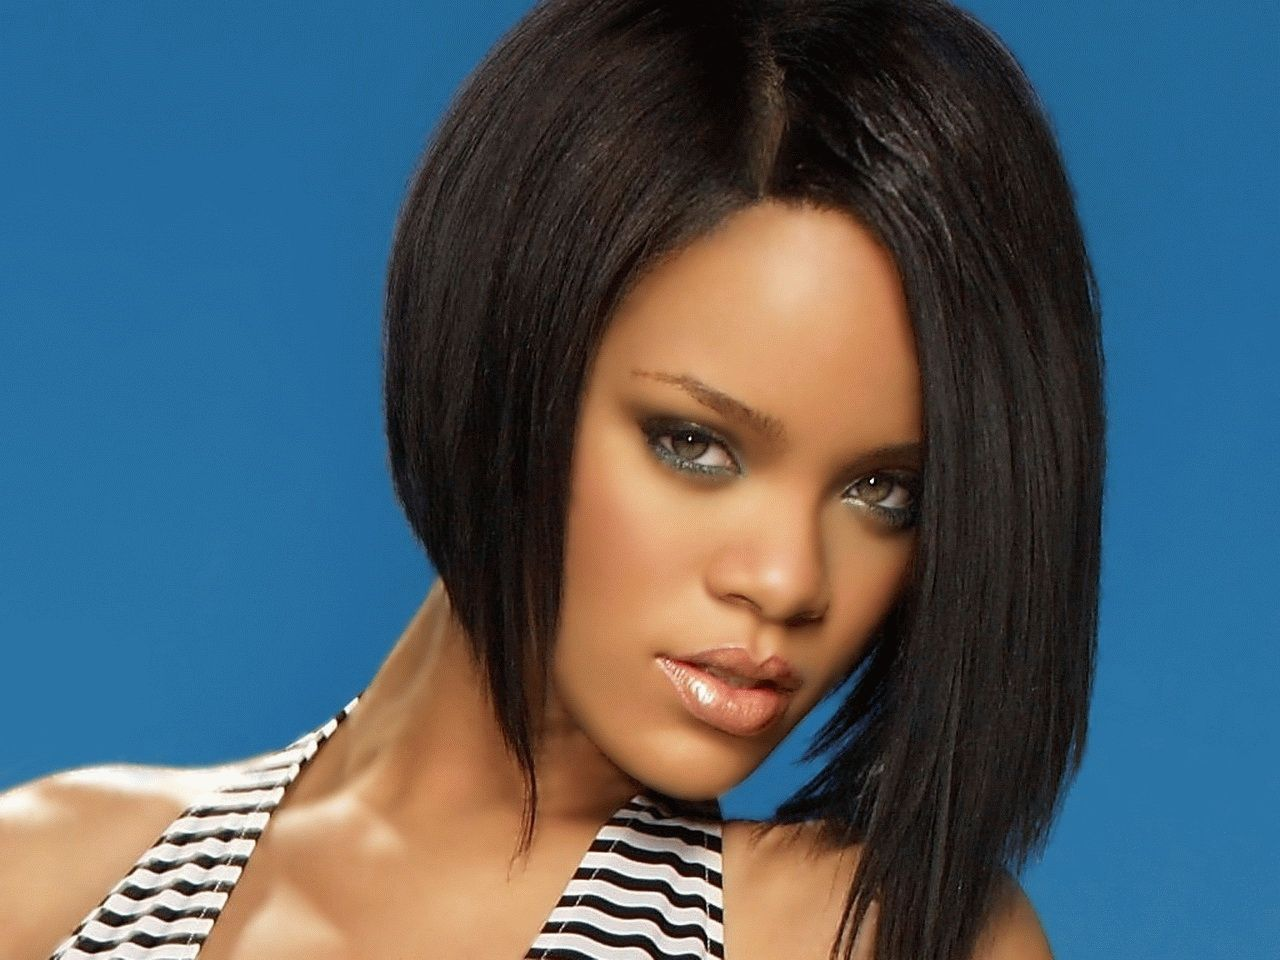 Short Flat Iron Hairstyles Love The Hair  Things To Wear  Pinterest  Rihanna